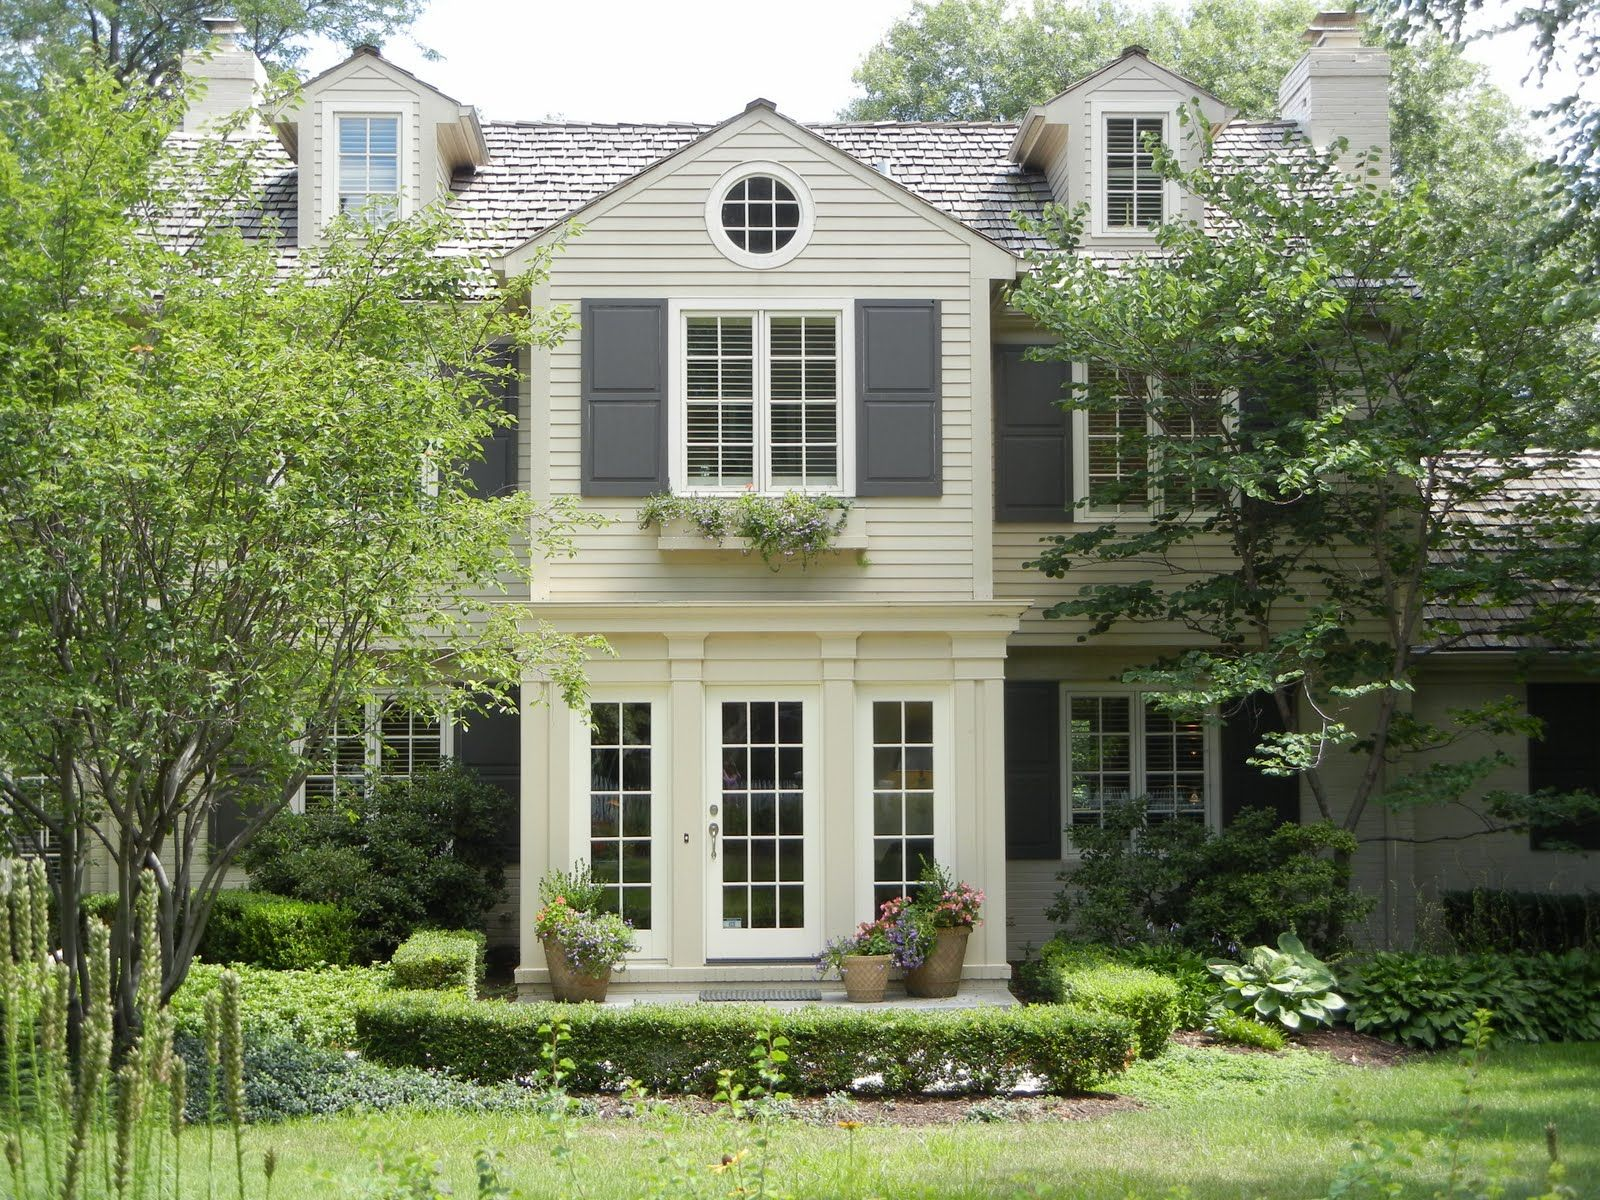 exterior colors we talked about (cream house, white trim ...